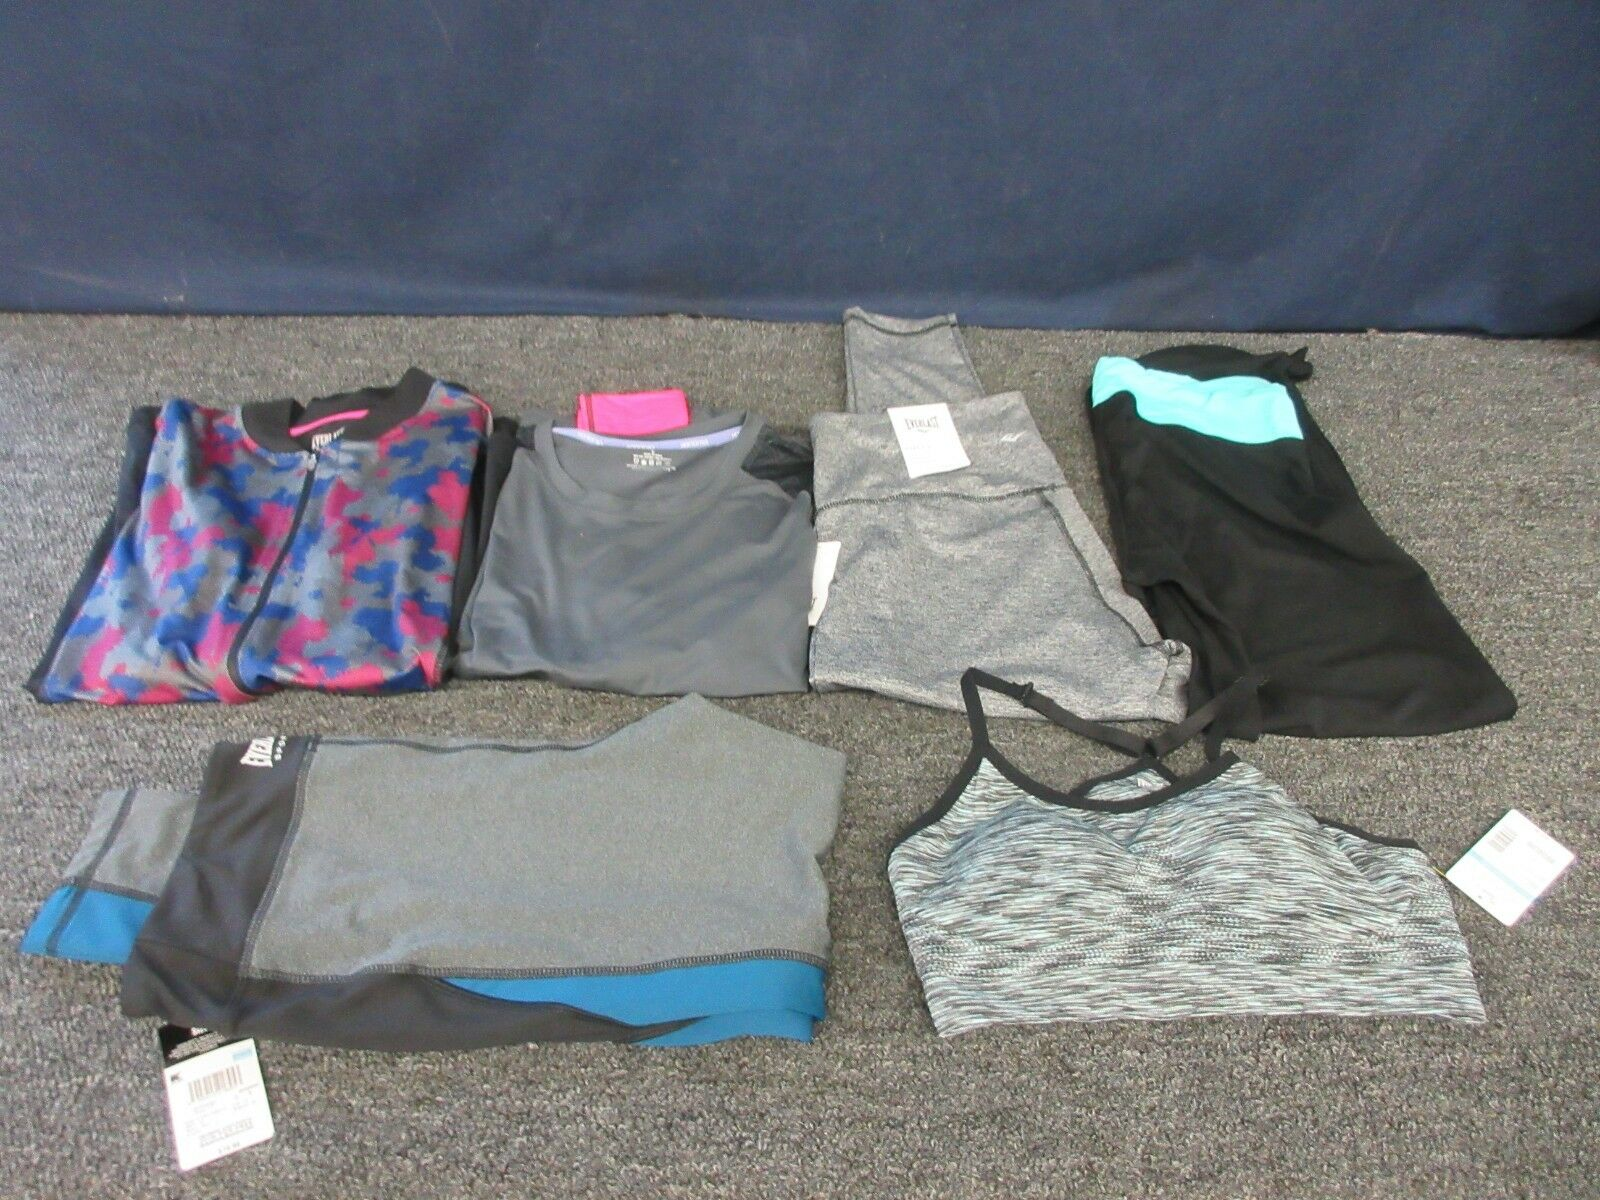 6 WOMEN LADIES LARGE CLOTHES TOPS WORKOUT GYM GEAR EVERLAST HOTTOTTIES